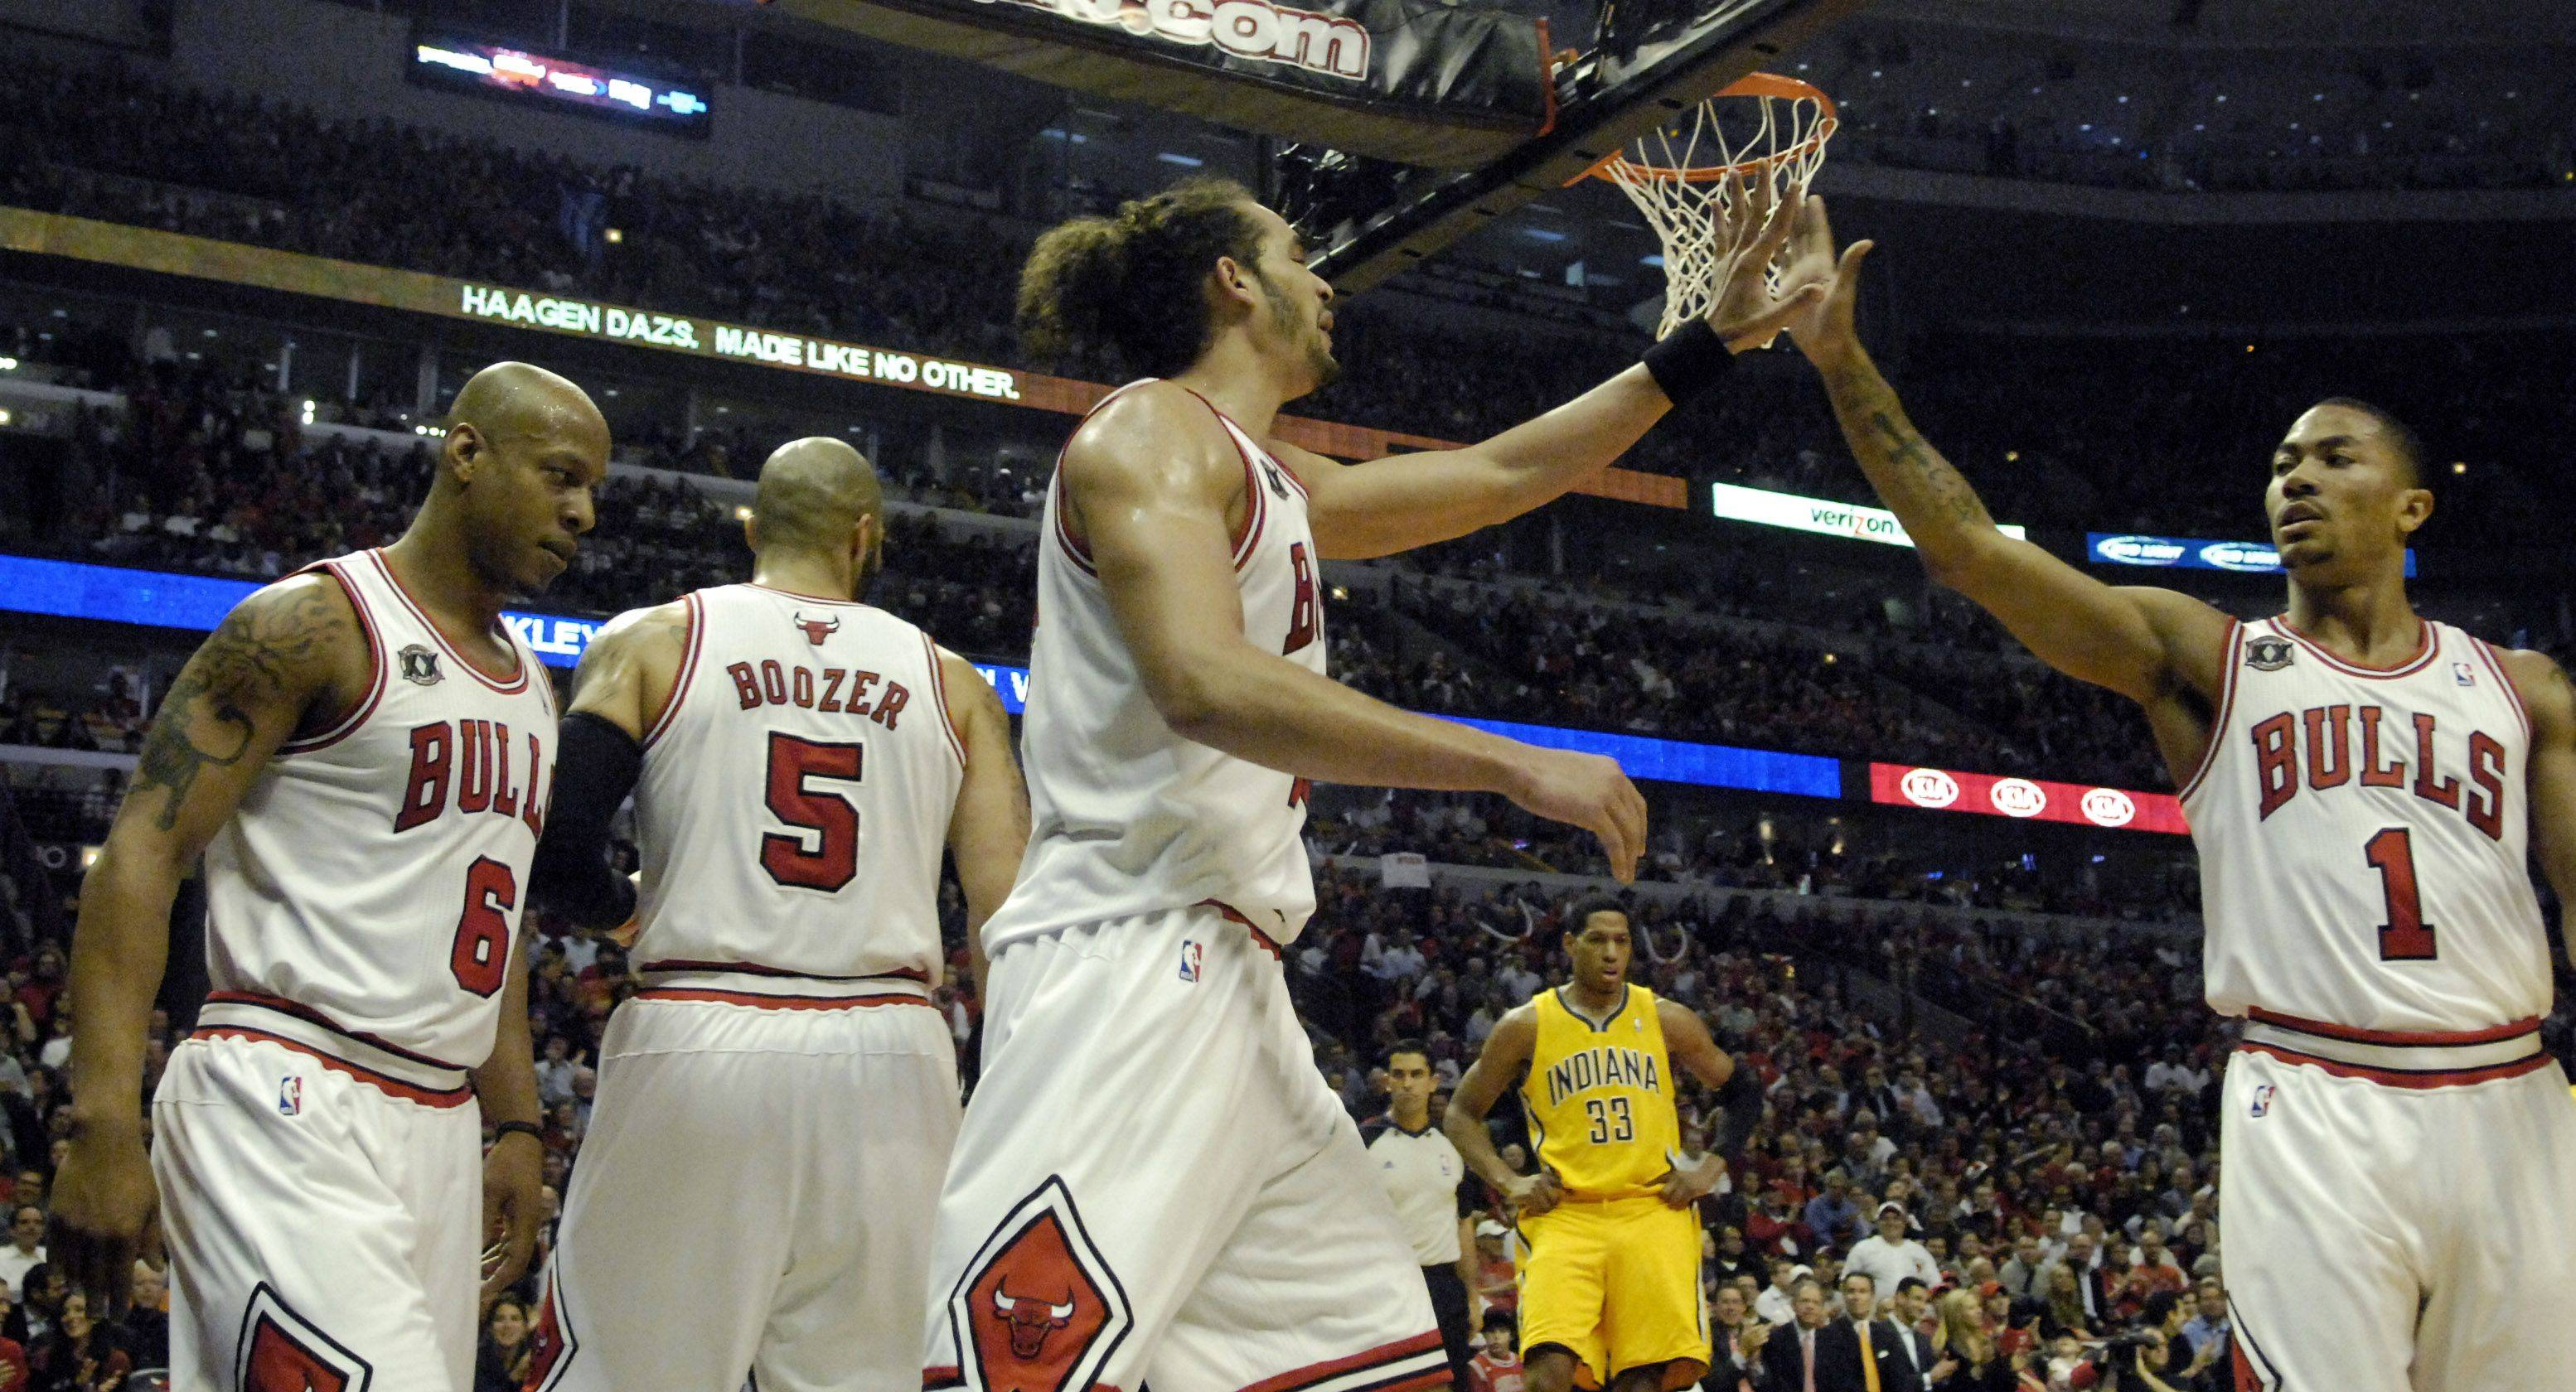 Bulls center Joakim Noah and point guard Derrick Rose high five after a Noah basket and foul in the first half against Indiana Tuesday.